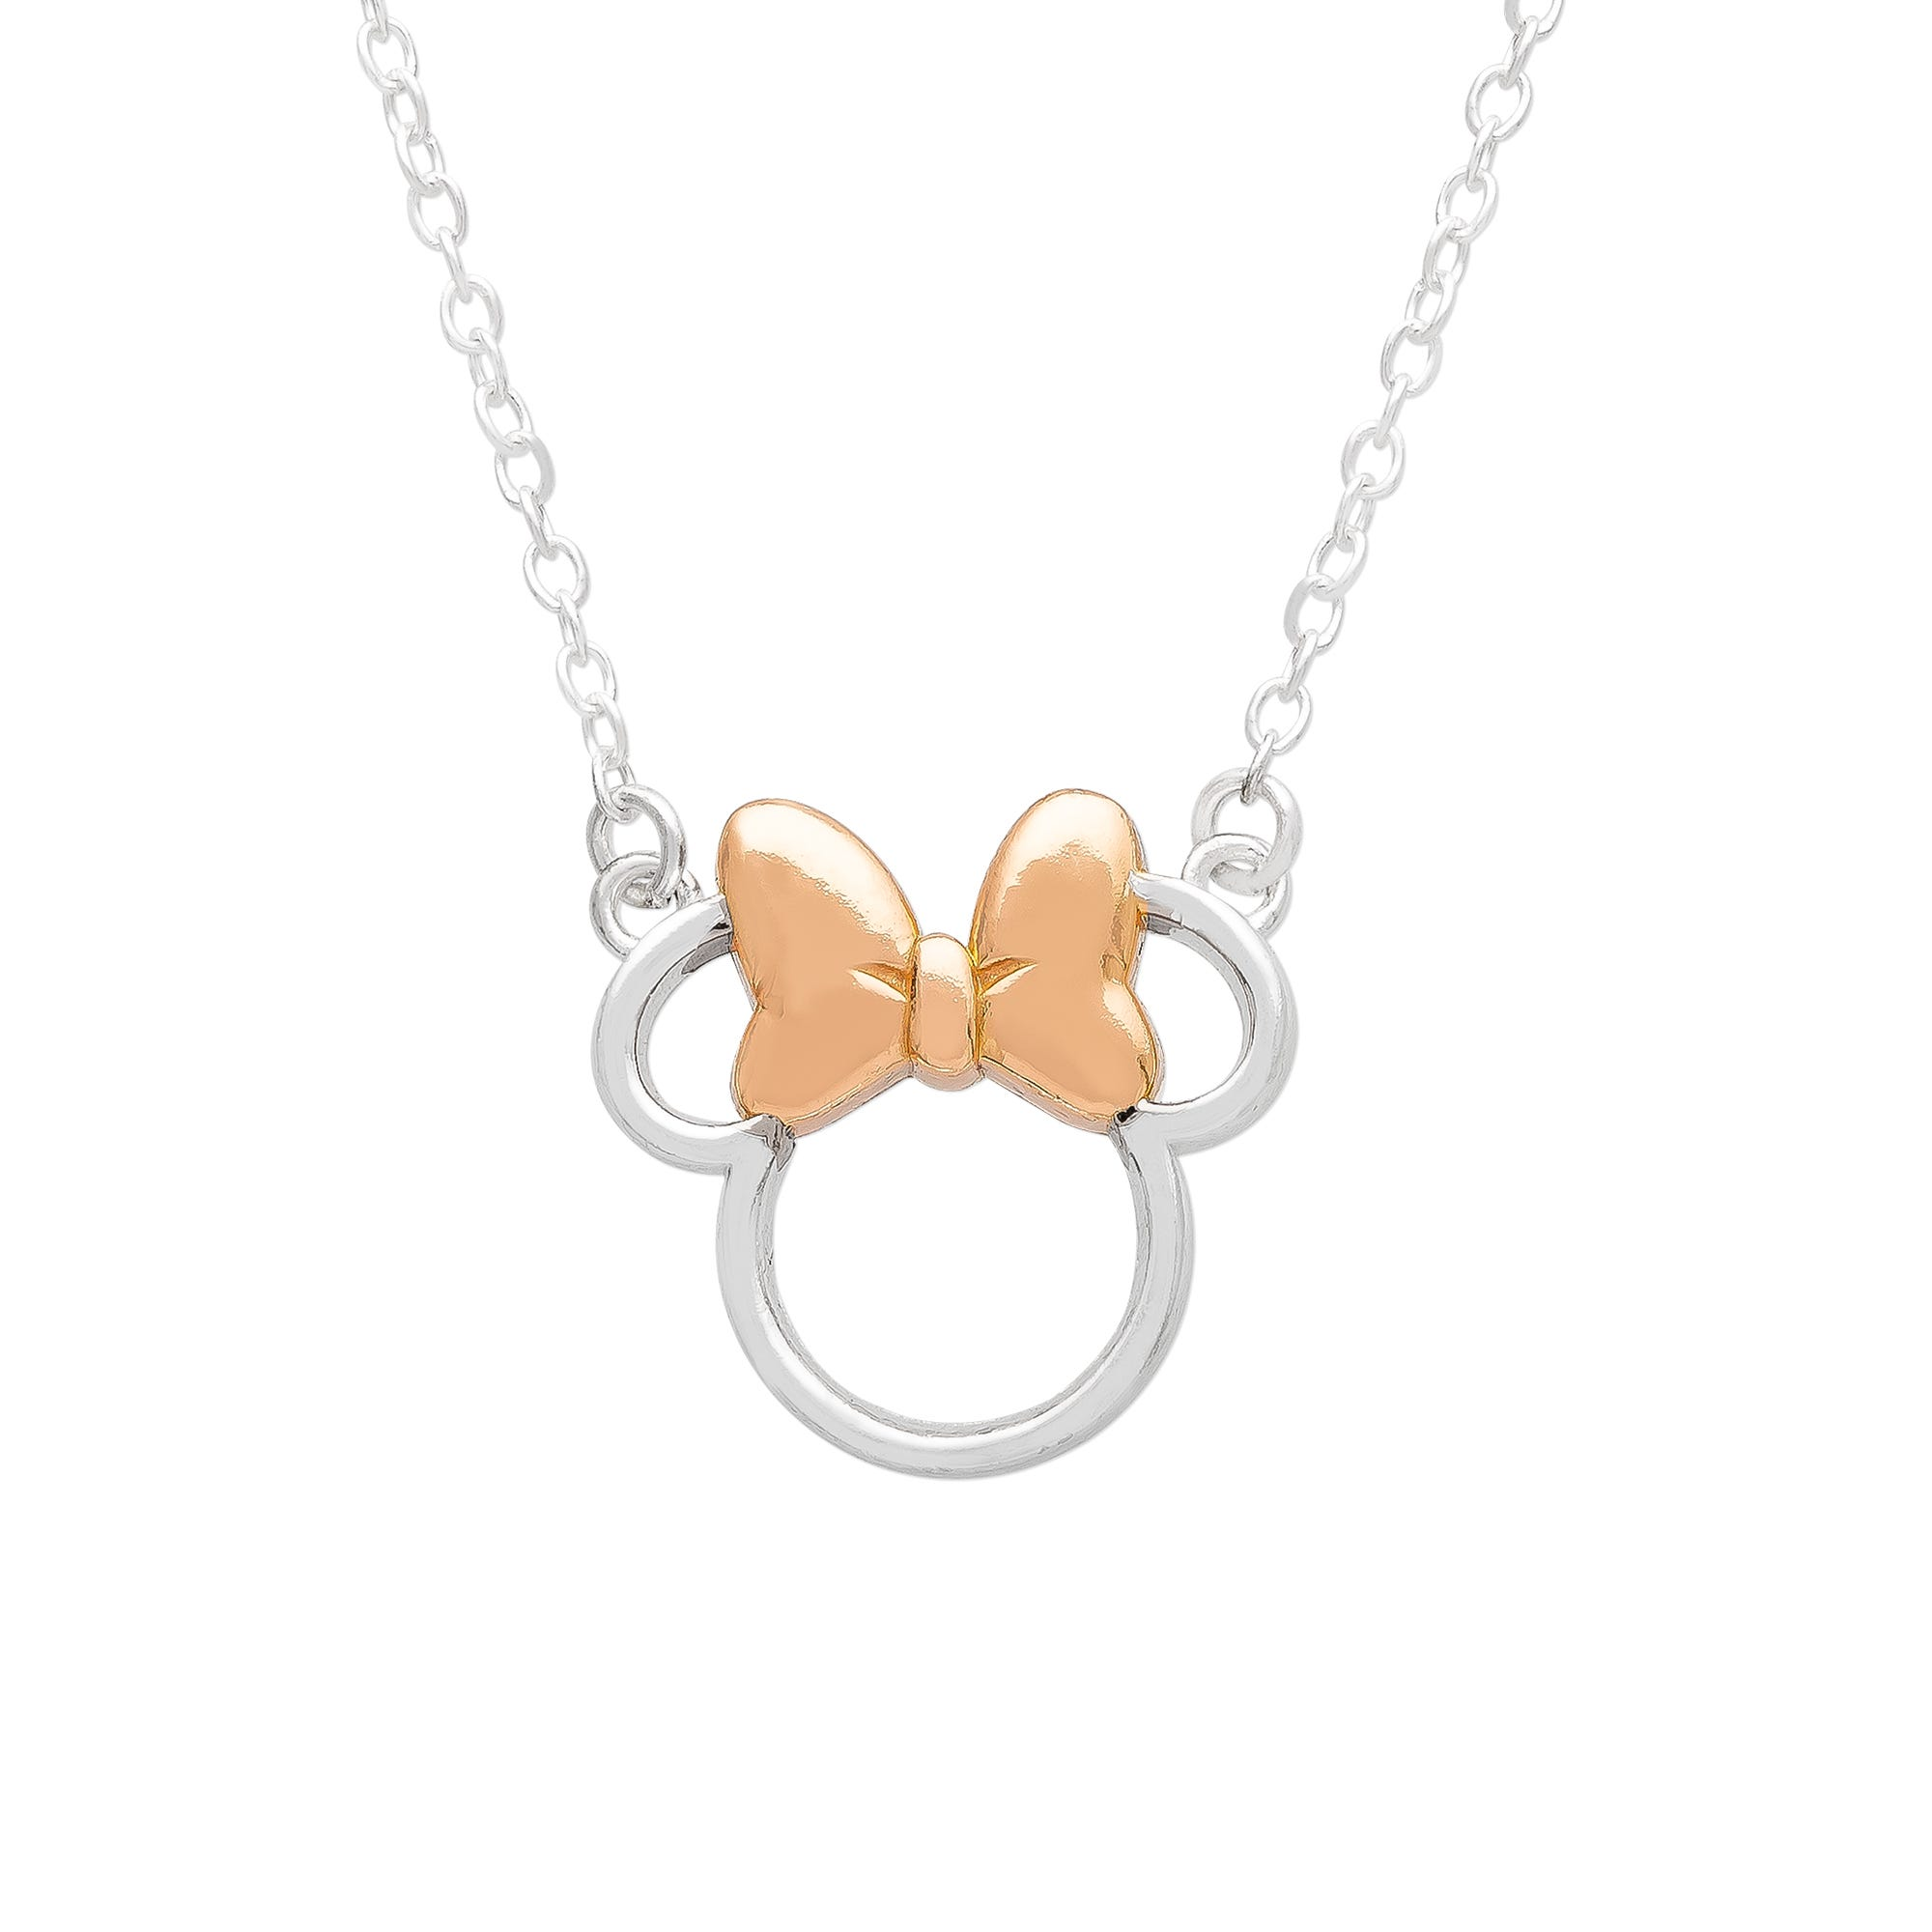 DISNEY© Minnie Mouse Necklace in Sterling Silver & Rose Gold Plated